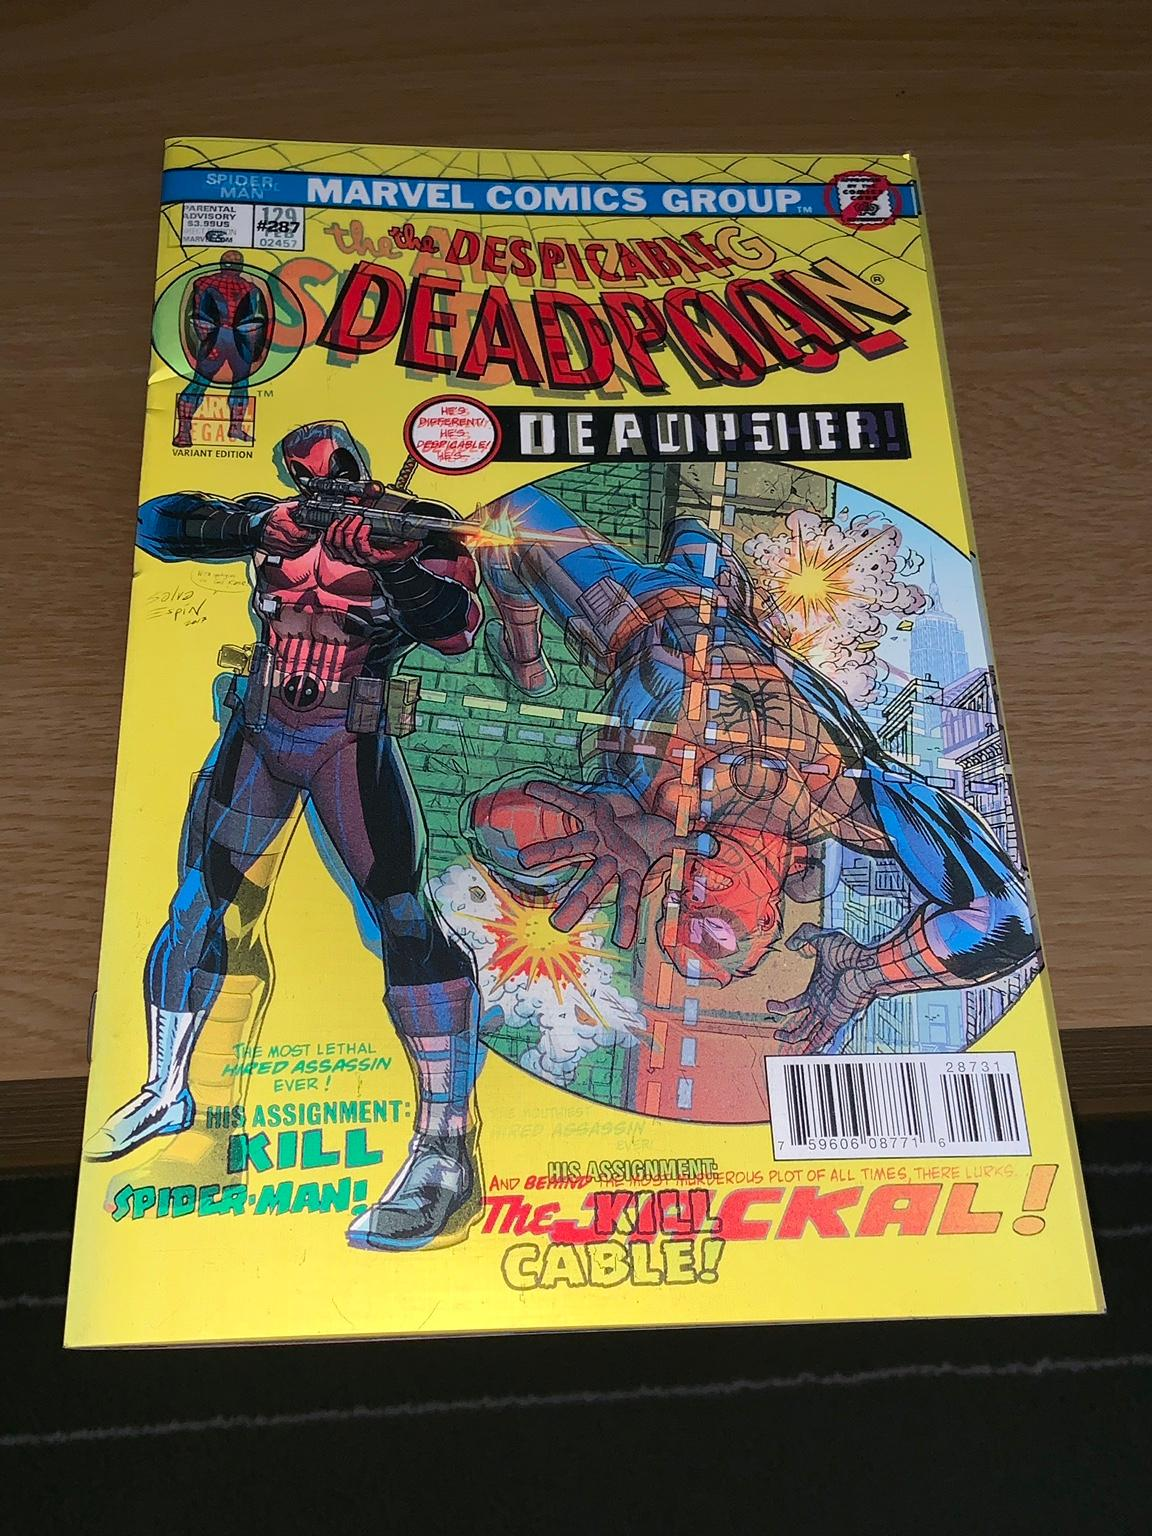 DESPICABLE DEADPOOL #287 ESPIN LENTICULAR 3D VARIANT COVER HOMAGE SPIDER-MAN 129